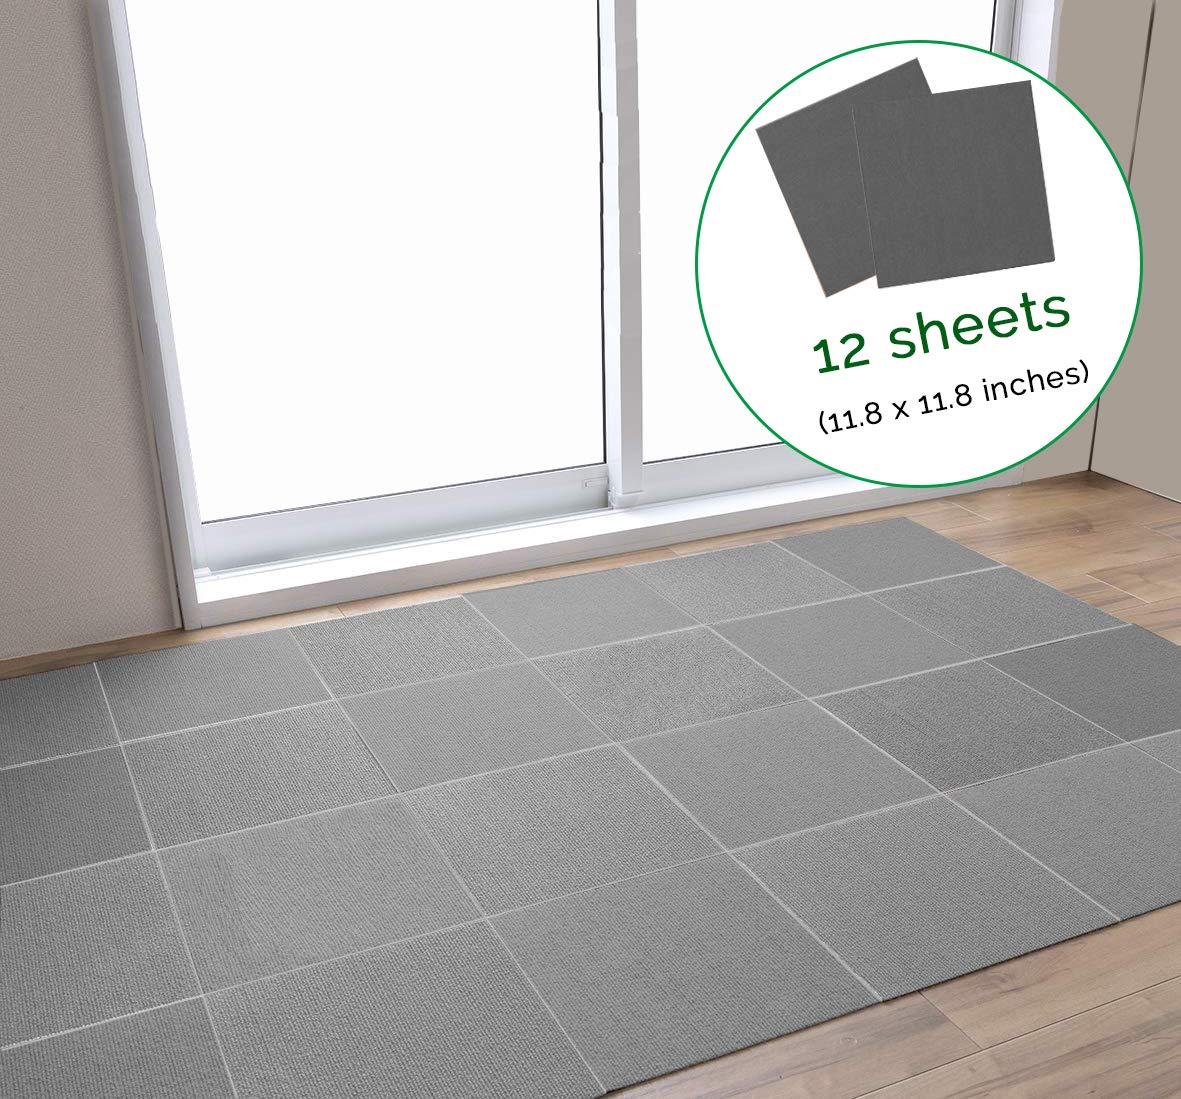 LOOBANI Non-Slip Treads Mat for Dogs and Pets, Self-Adhering Removable Washable Step Rugs Floor Protector for Skid Indoor Surfaces- Set of 12 (Grey)